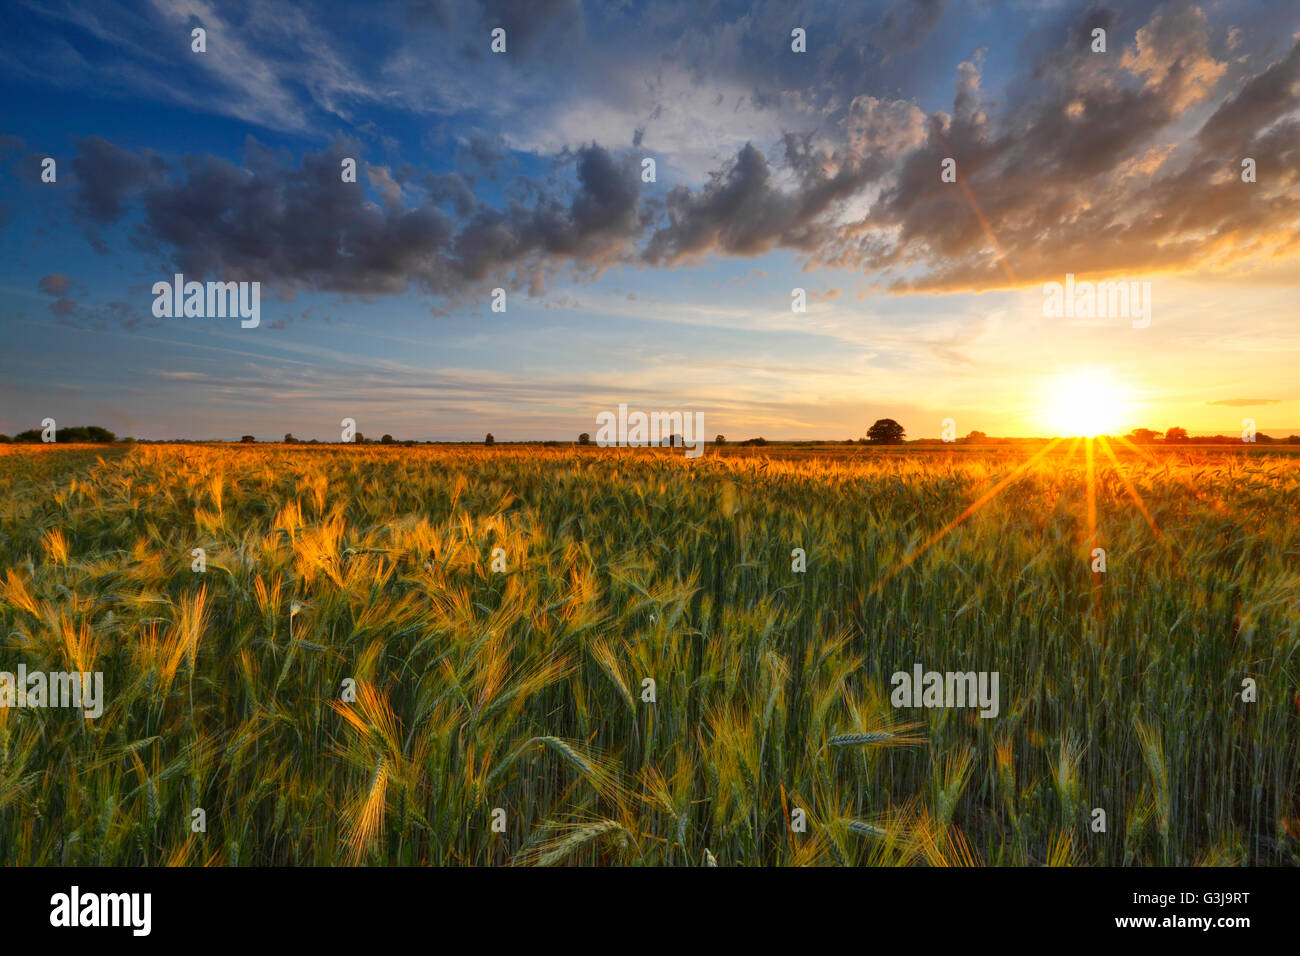 Wheat field at sunset and clouds - Stock Image